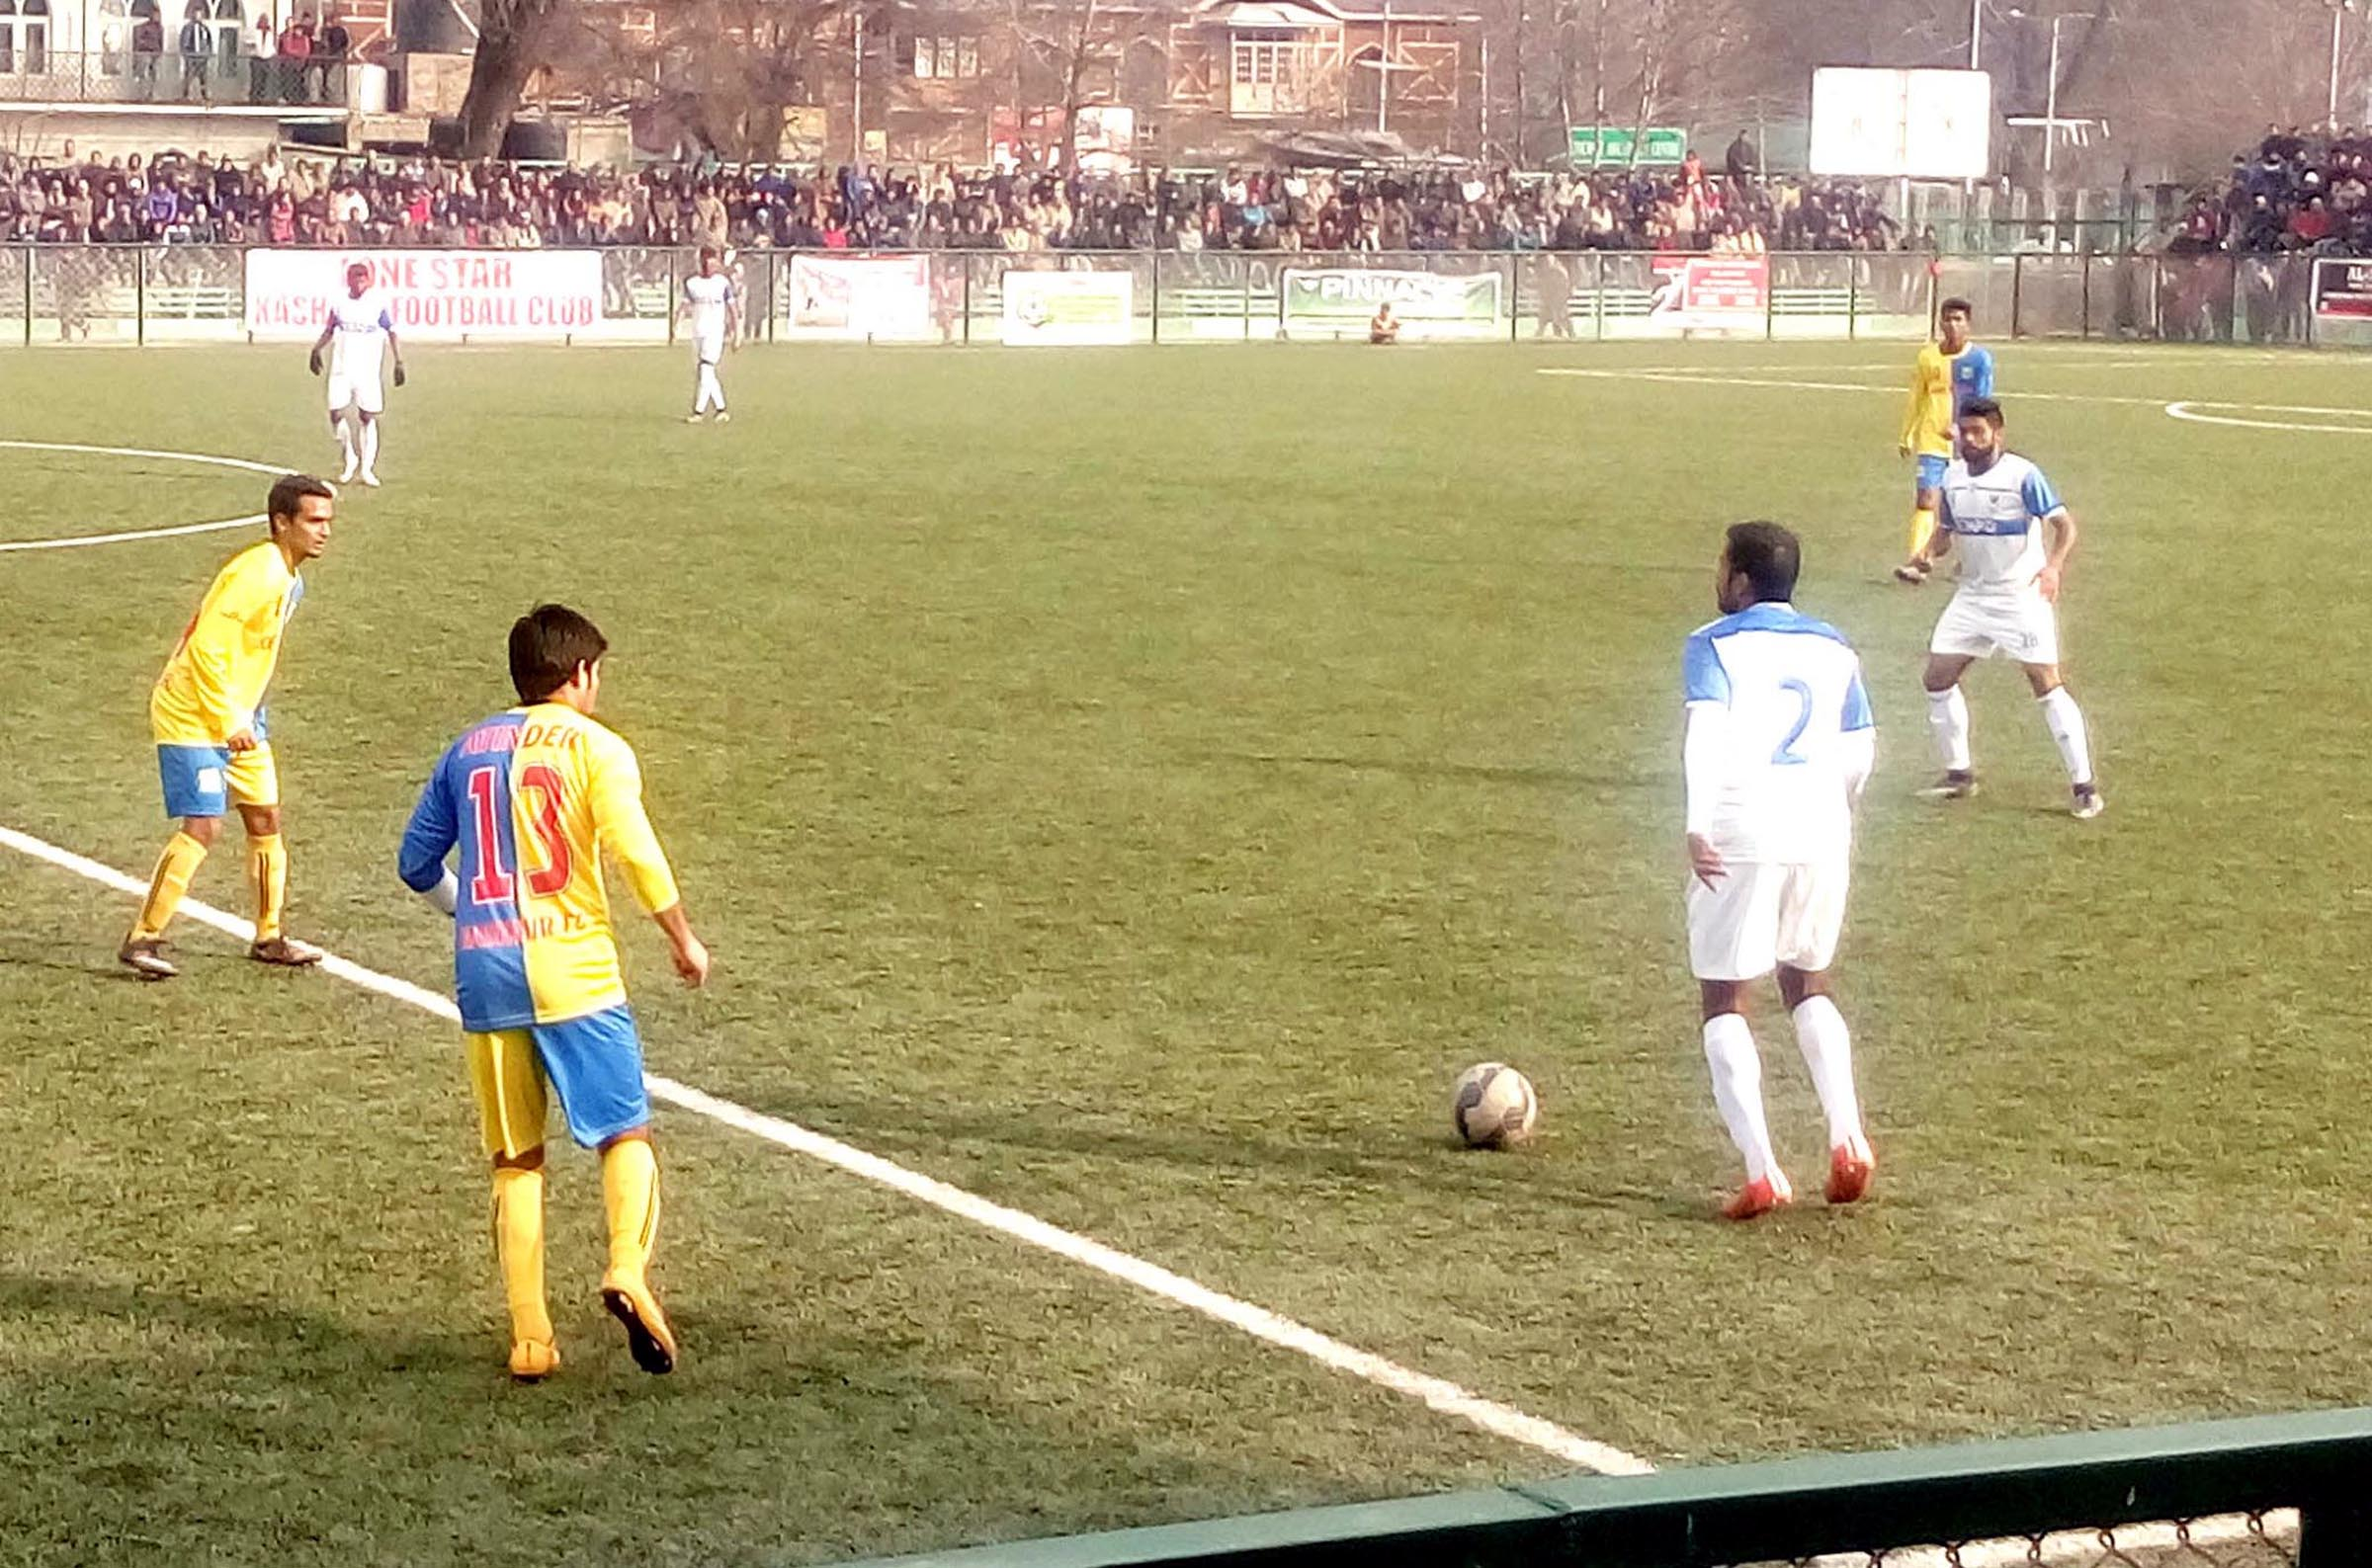 Footballers in action during a match between Lone Star KFC and Dempo Sports Goa at Synthetic Football Turf in Srinagar.